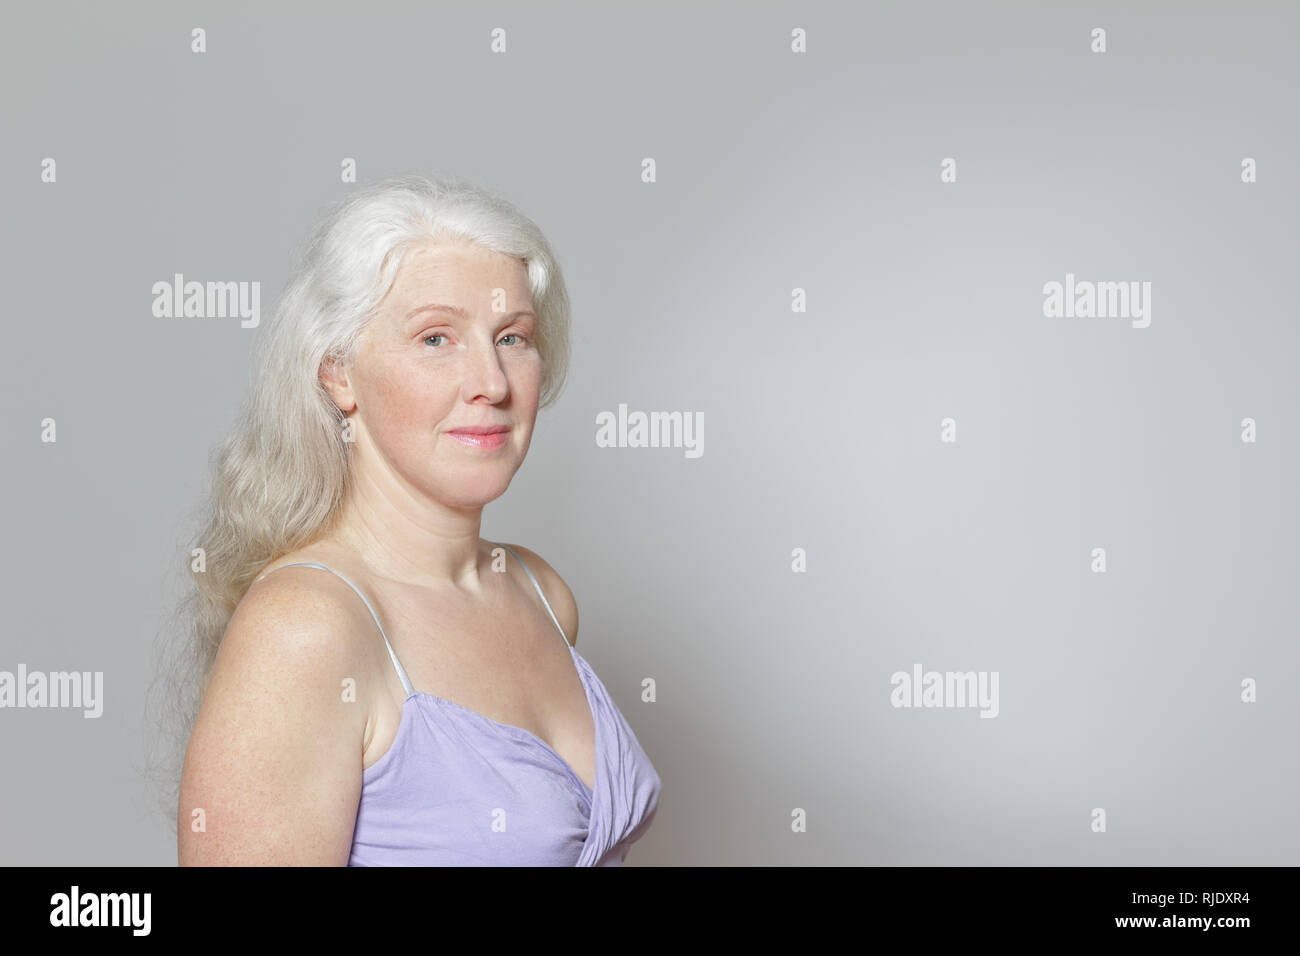 Headshot of a mature woman with freckles and shiny long gray hair in front of white background, copy space. Stock Photo